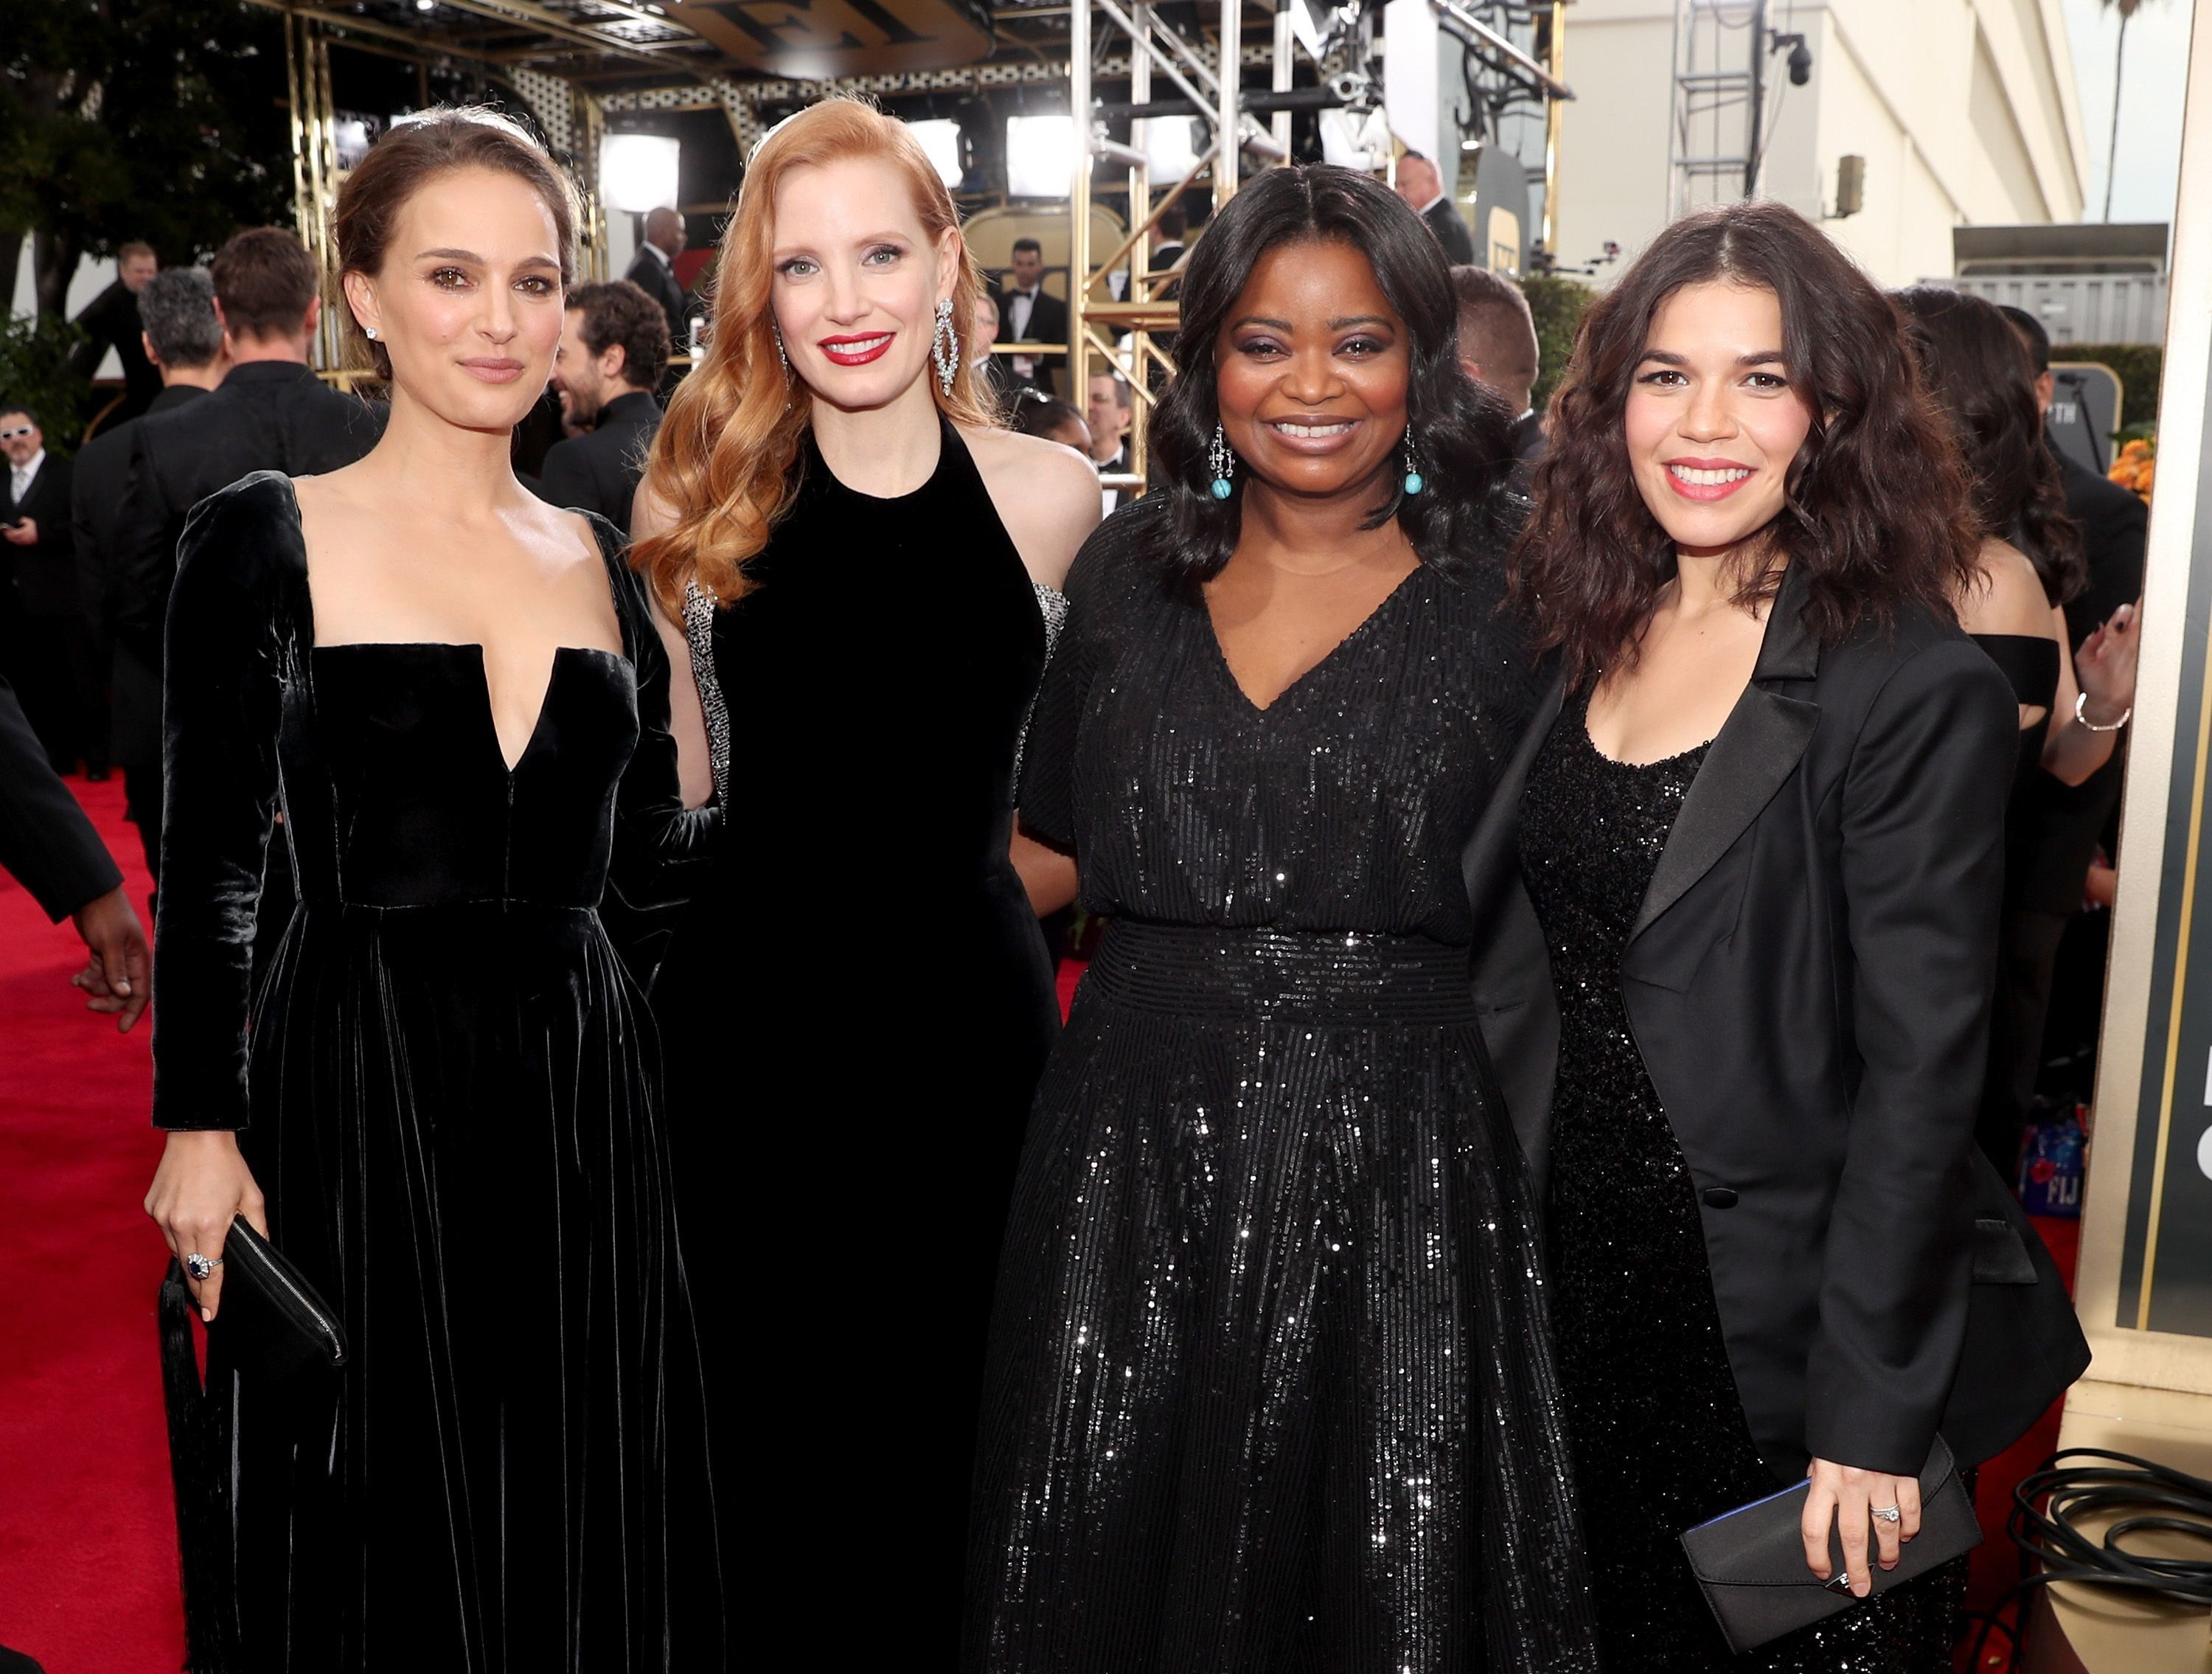 Natalie Portman, Jessica Chastain, Octavia Spencer, and America Ferrera supported a black dress code at the 2018 Golden Globe